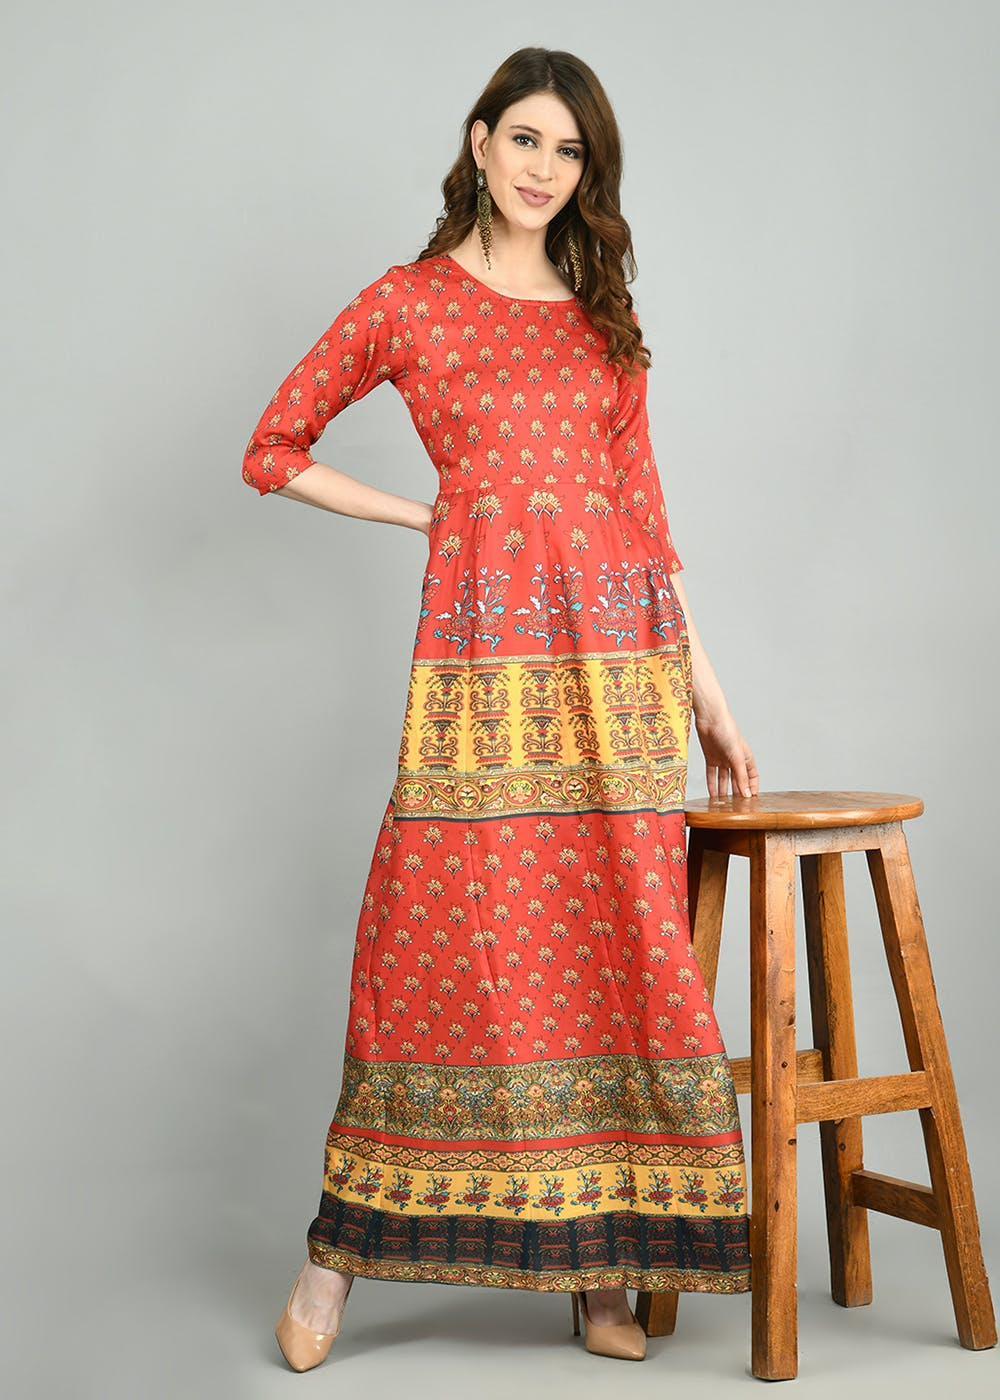 Contrast Panel Printed Red Round Neck Ethnic Dress